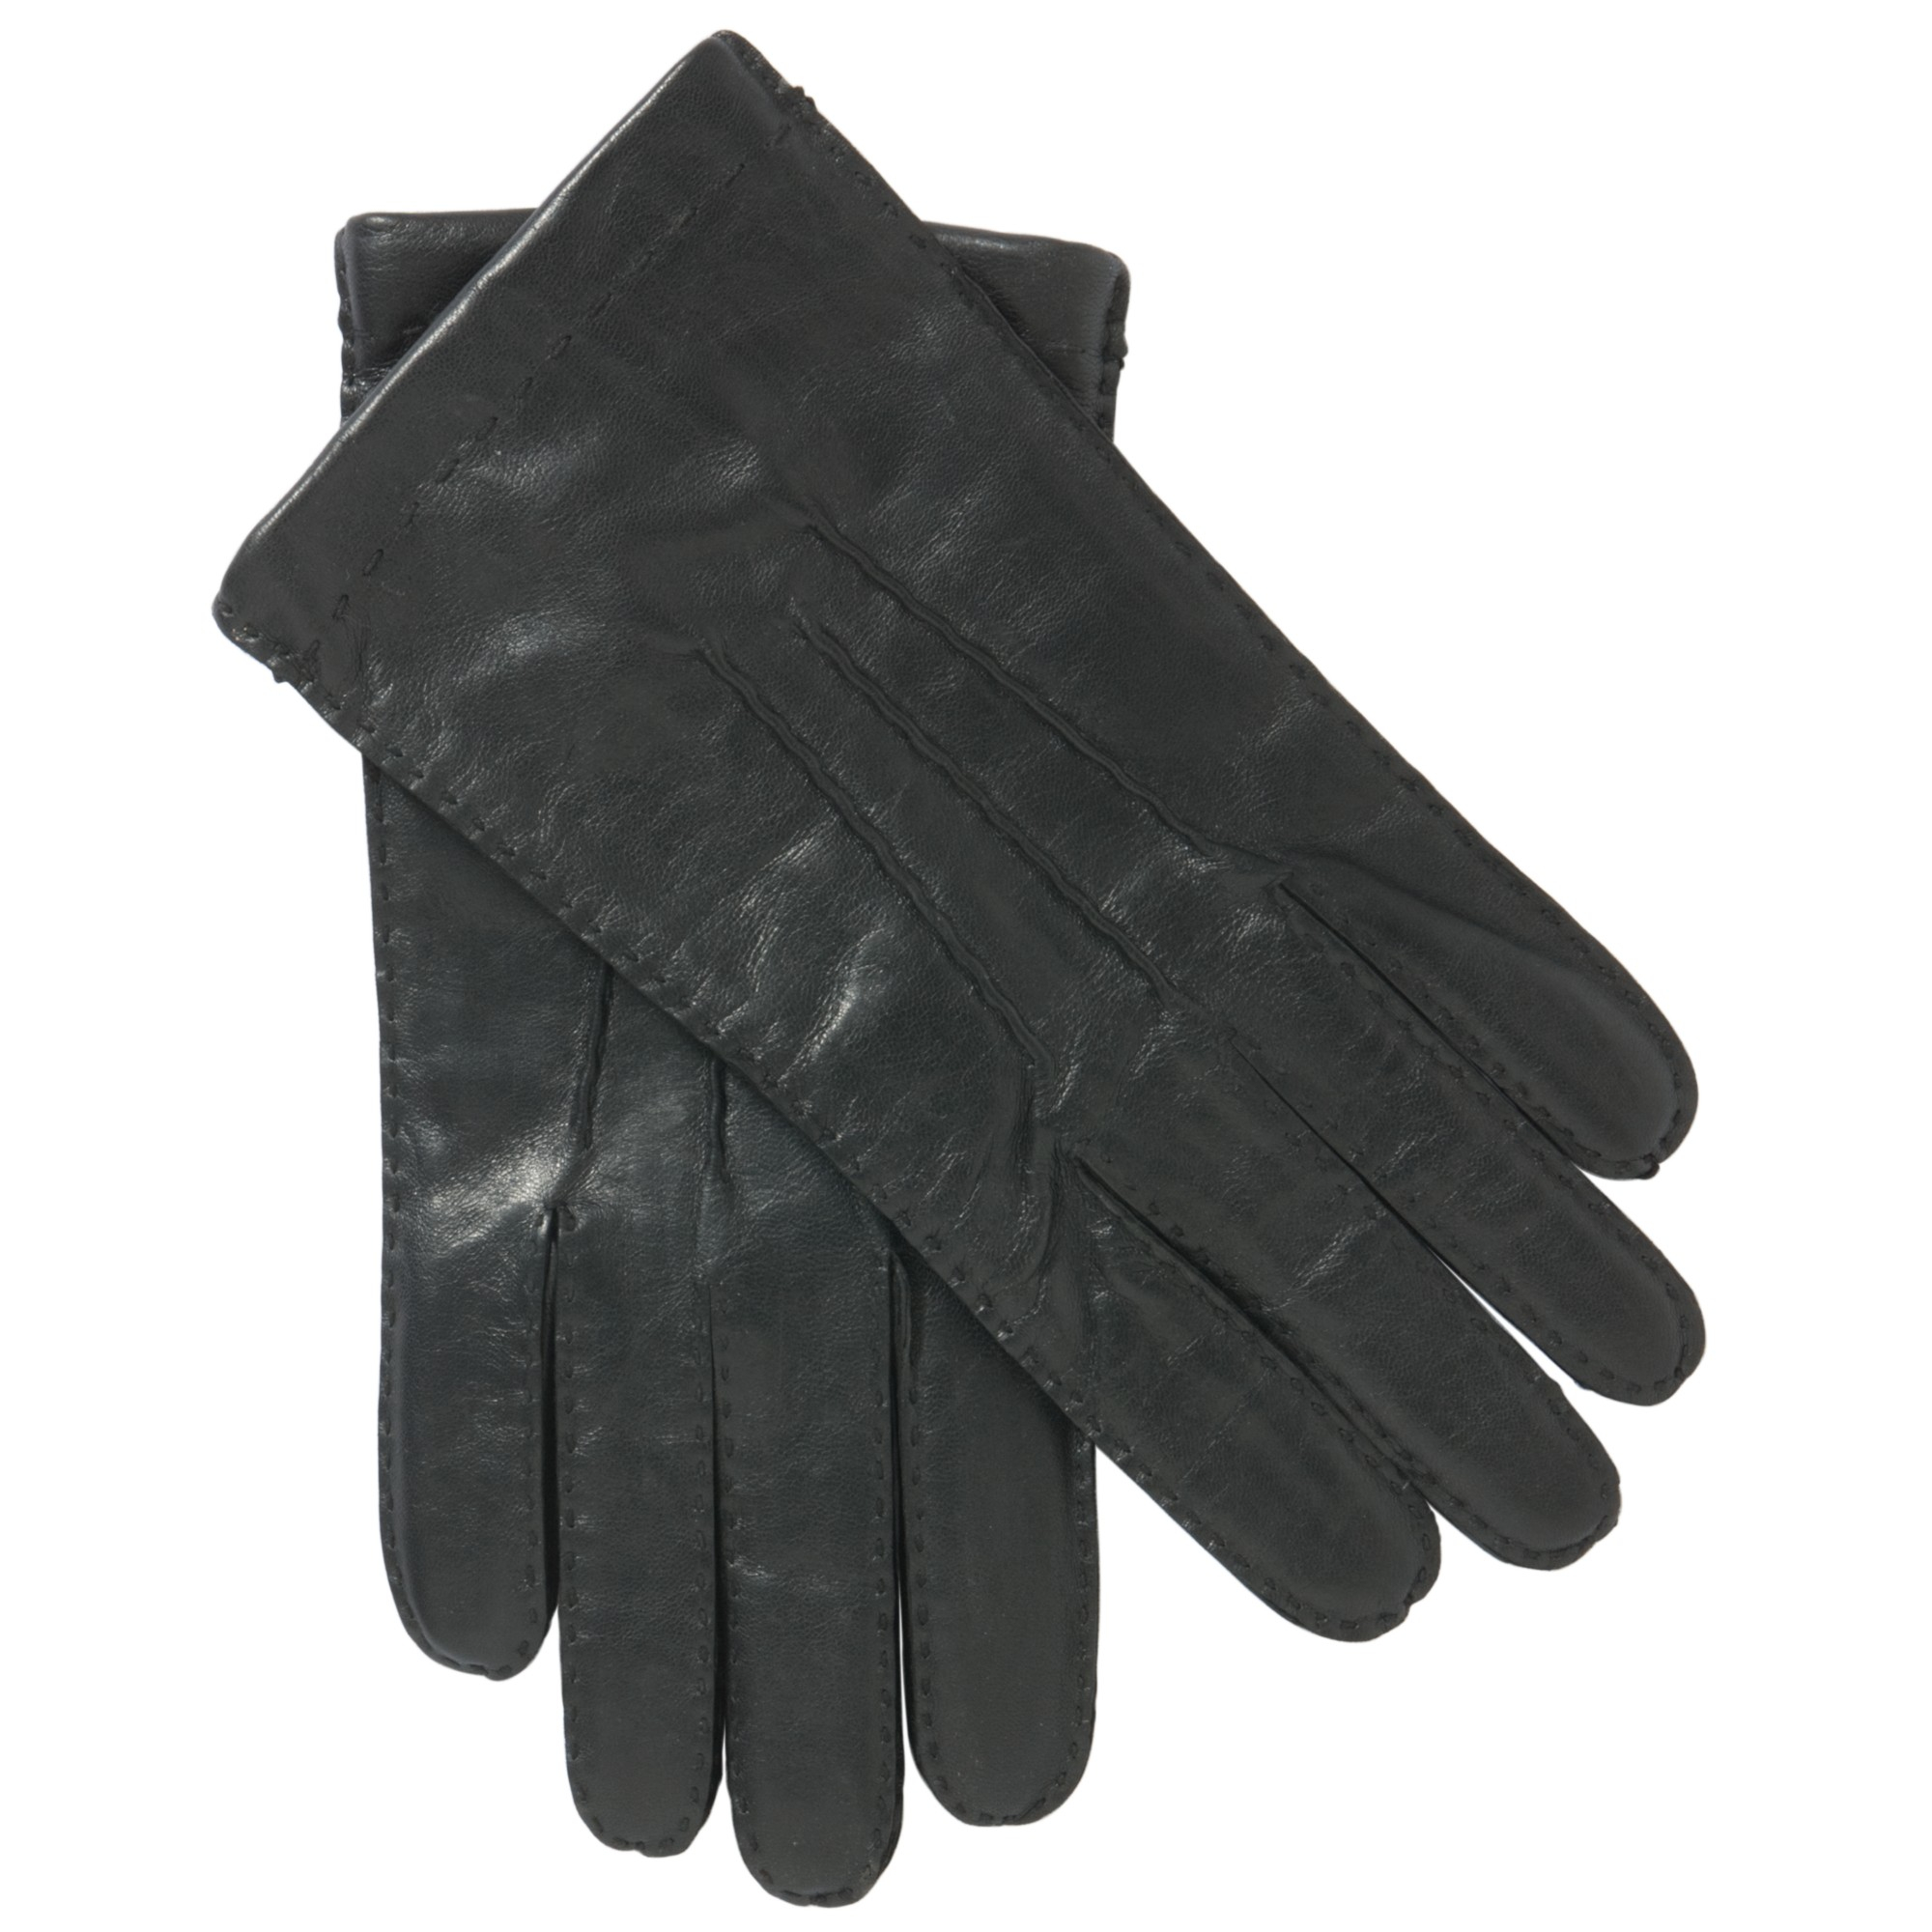 Black leather gloves asos - Black Leather Gloves John Lewis Gallery Women S Leather Gloves